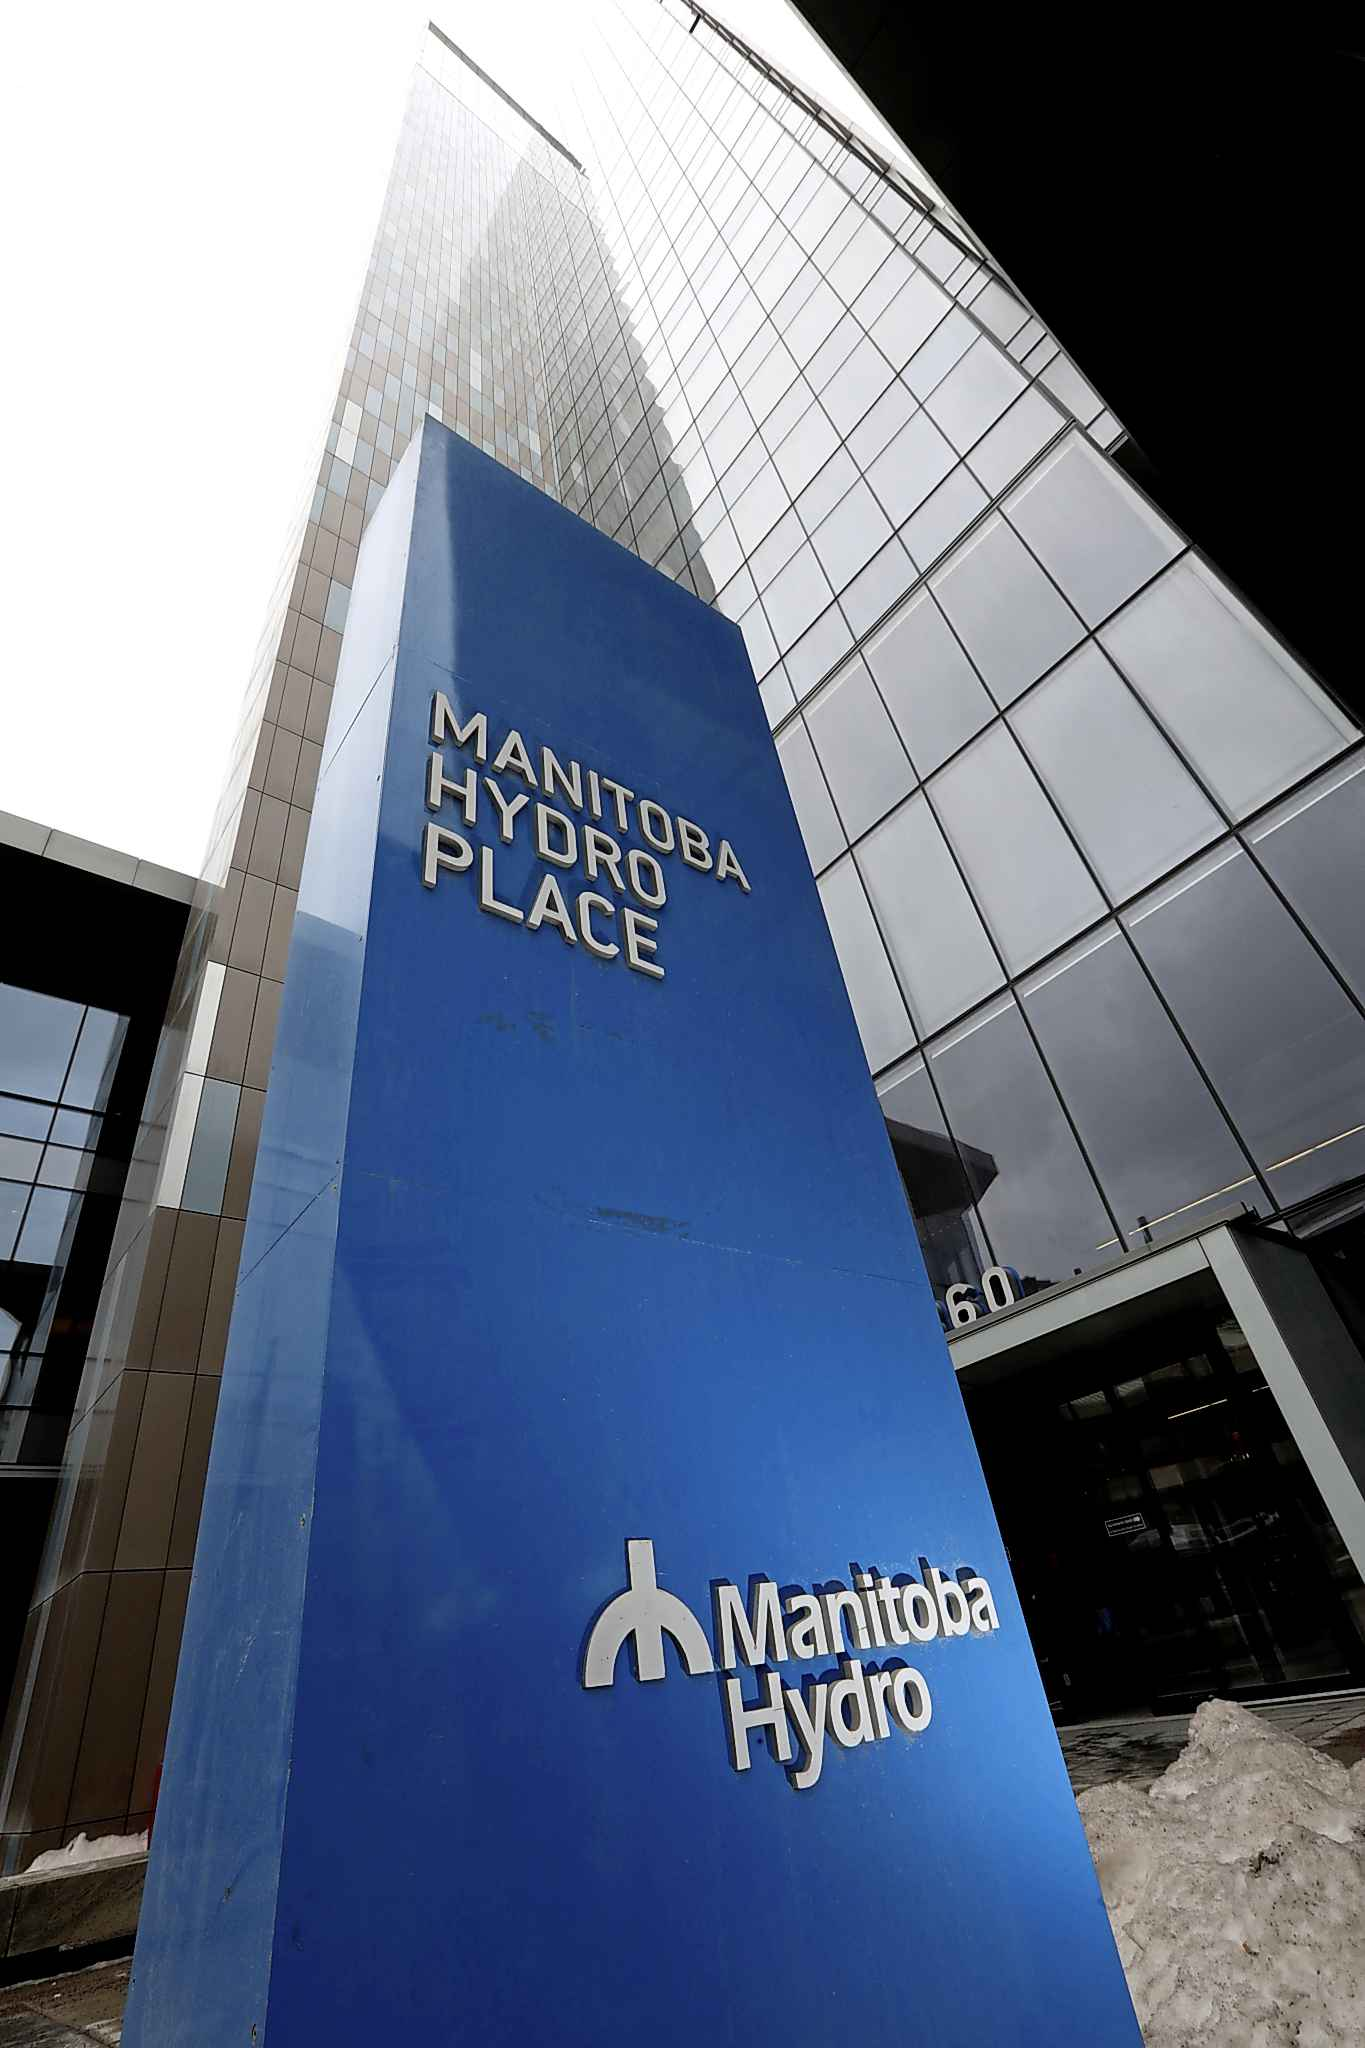 Manitoba Hydro has stated that it already achieved the staffing targets outlined in the Tory government's mandate.